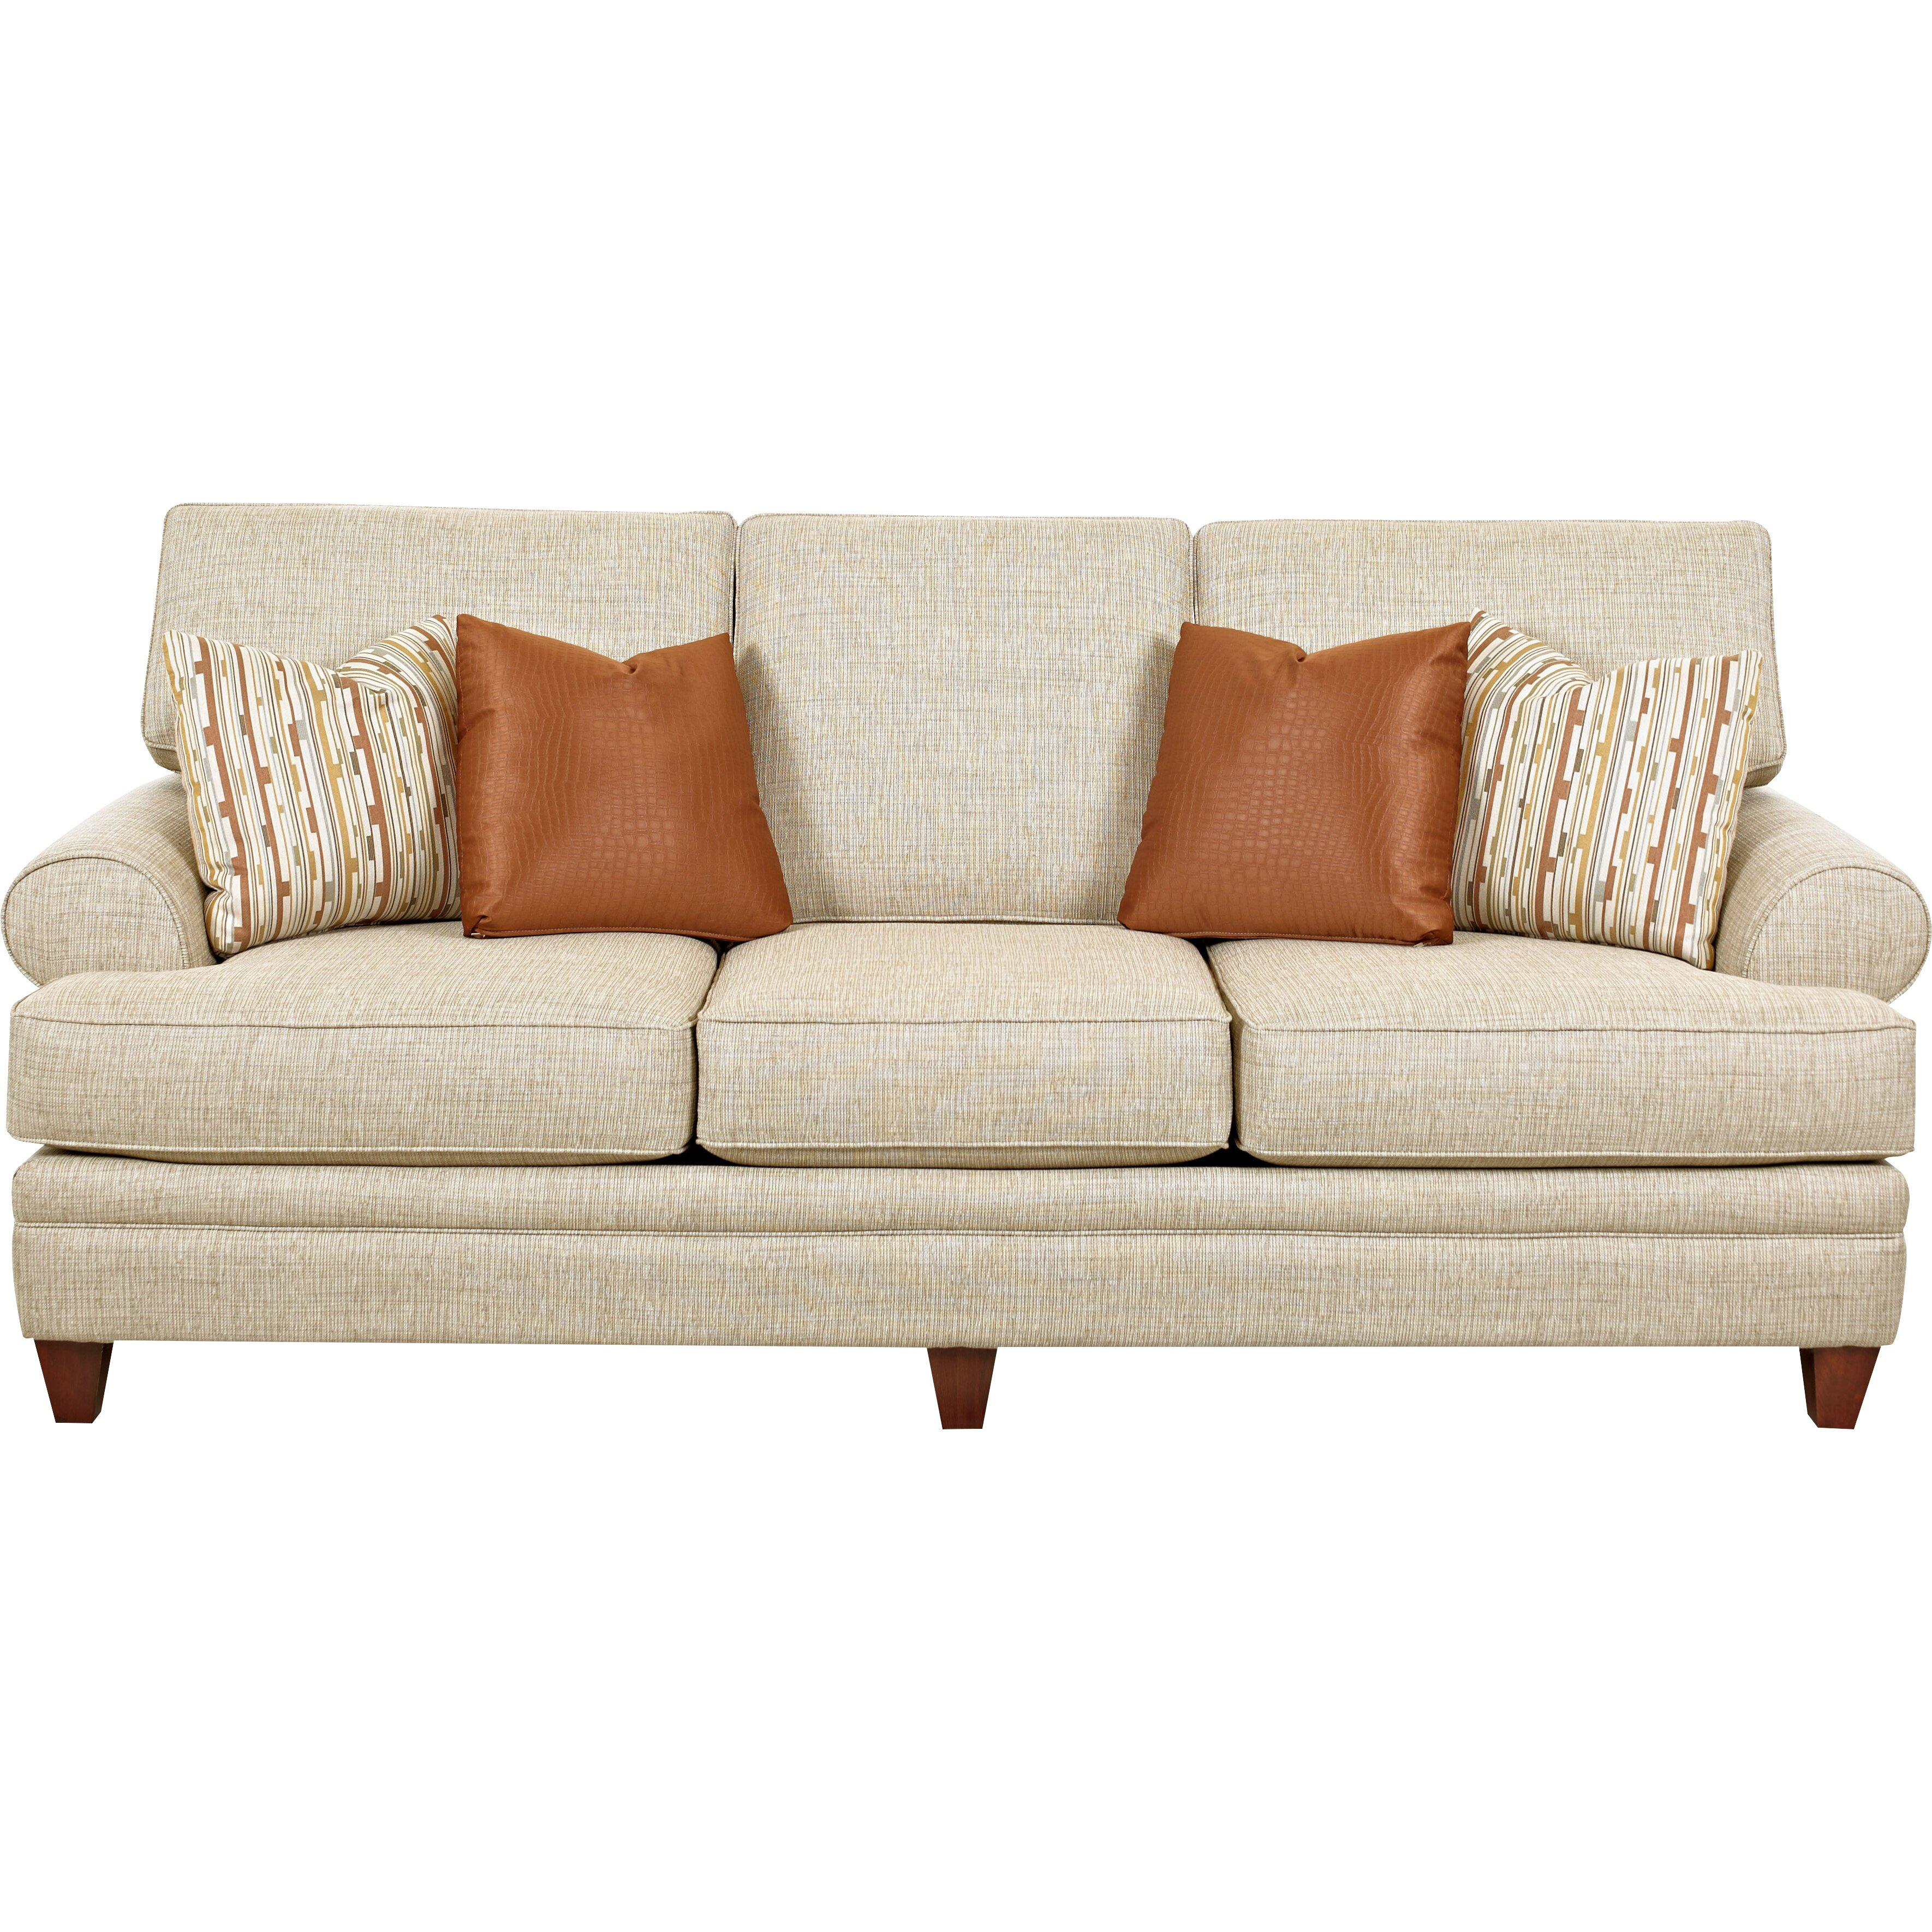 Sofa Prices Download The Catalogue And Request Prices Prisma